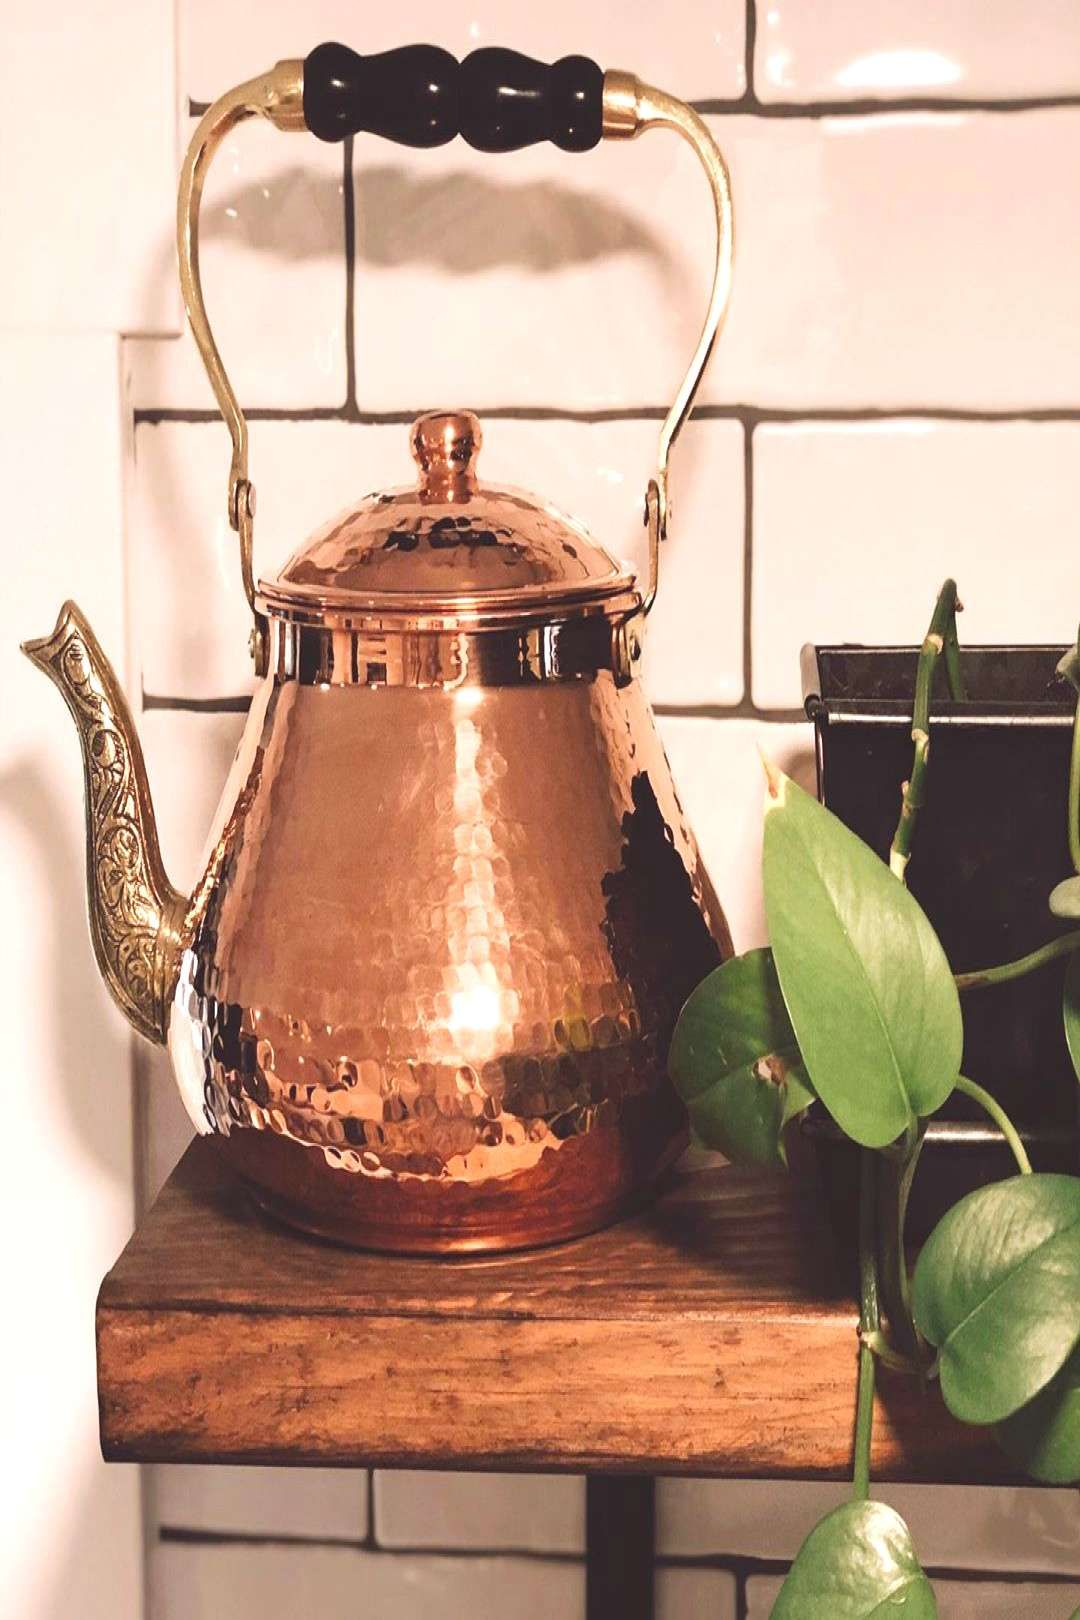 #remember #kitchen #wanted #copper #indoor #plant #more #how #the #tie #and #in #to #co #i Remember how I wanted more copper in the kitchen to tie in the coYou can find Diy kitchen and more on our website.Remember how I wan...